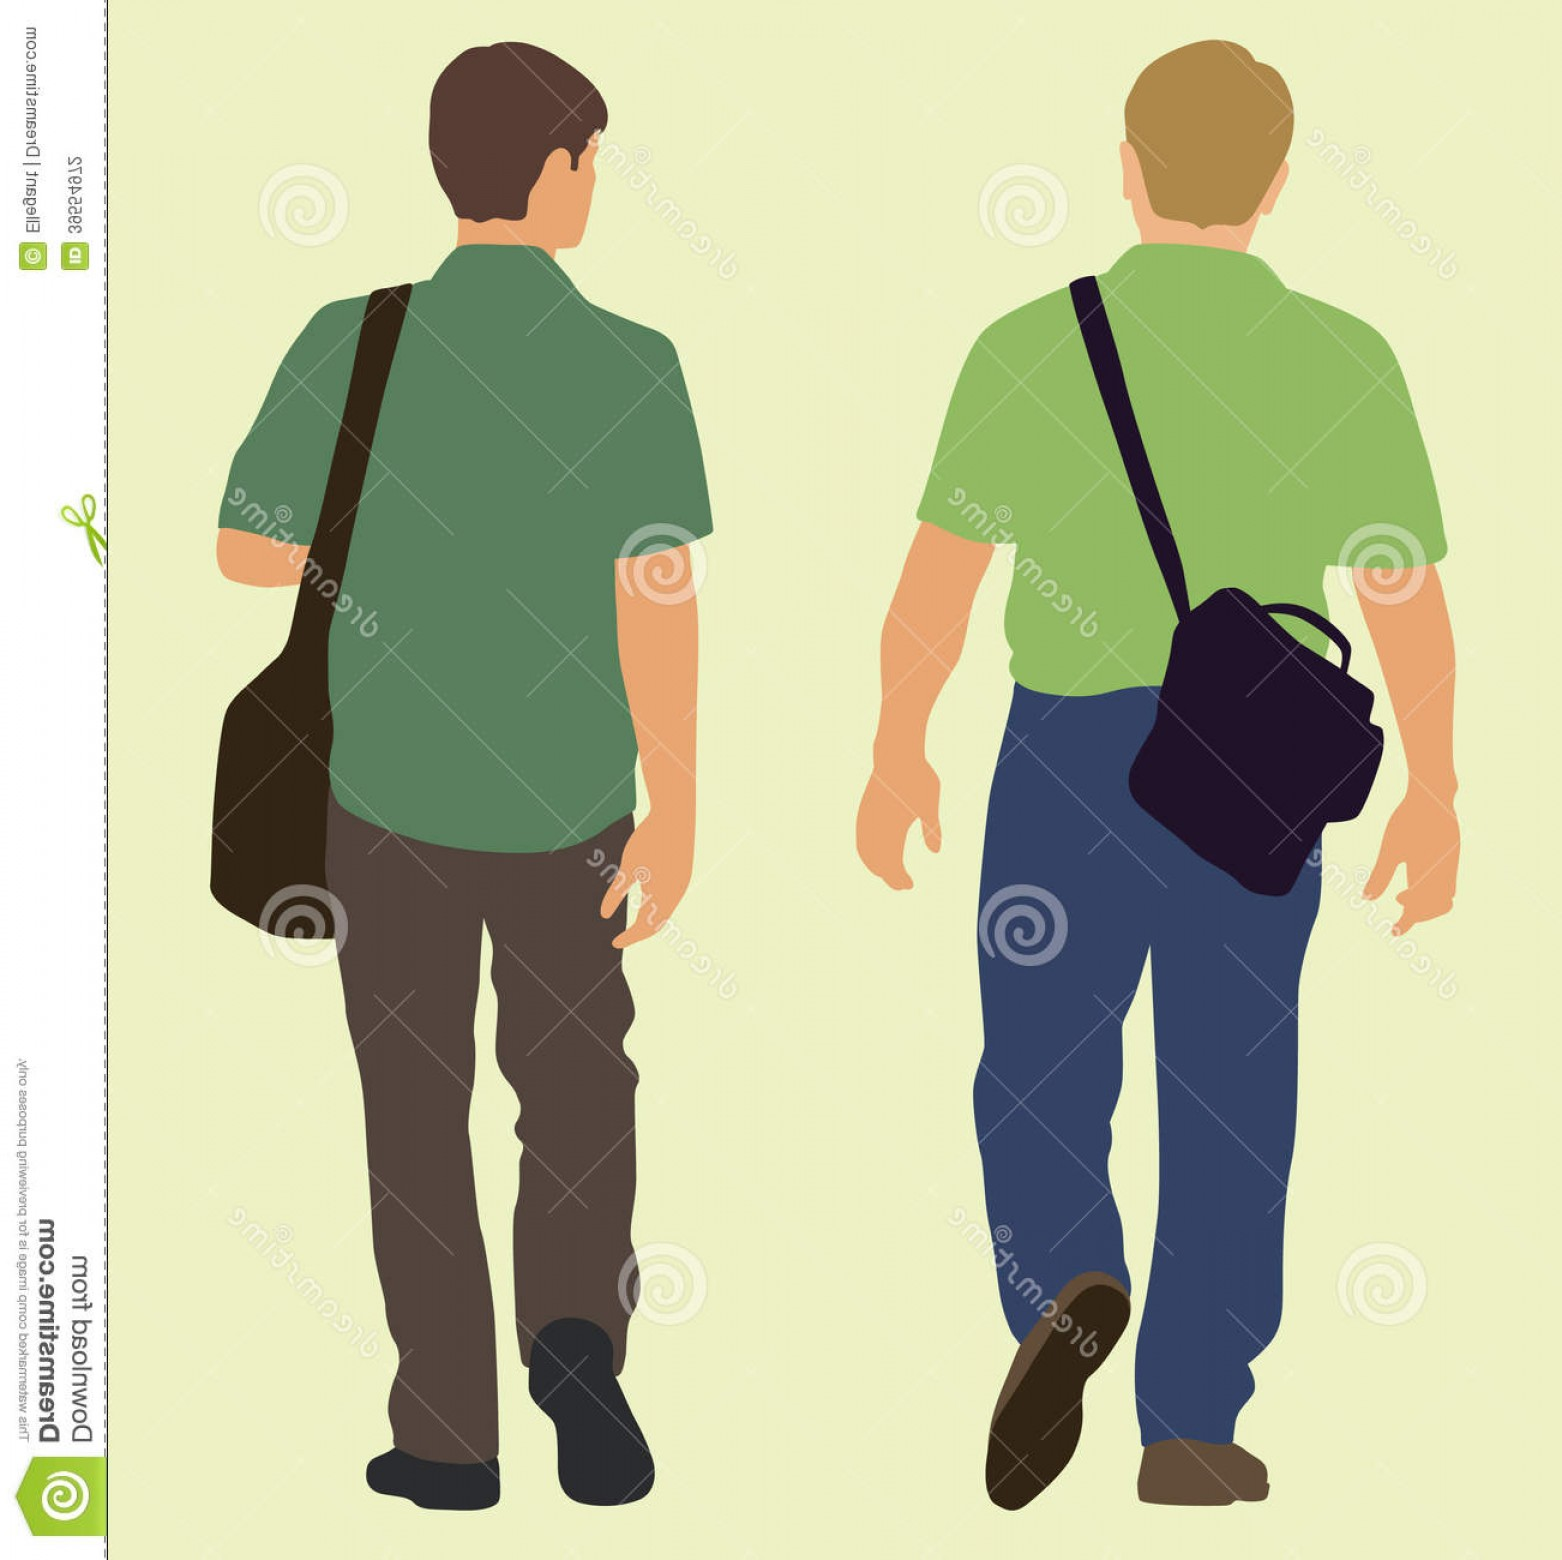 Walking Away Vector: Stock Photography Men Walking Away Carrying Bags Walk Image